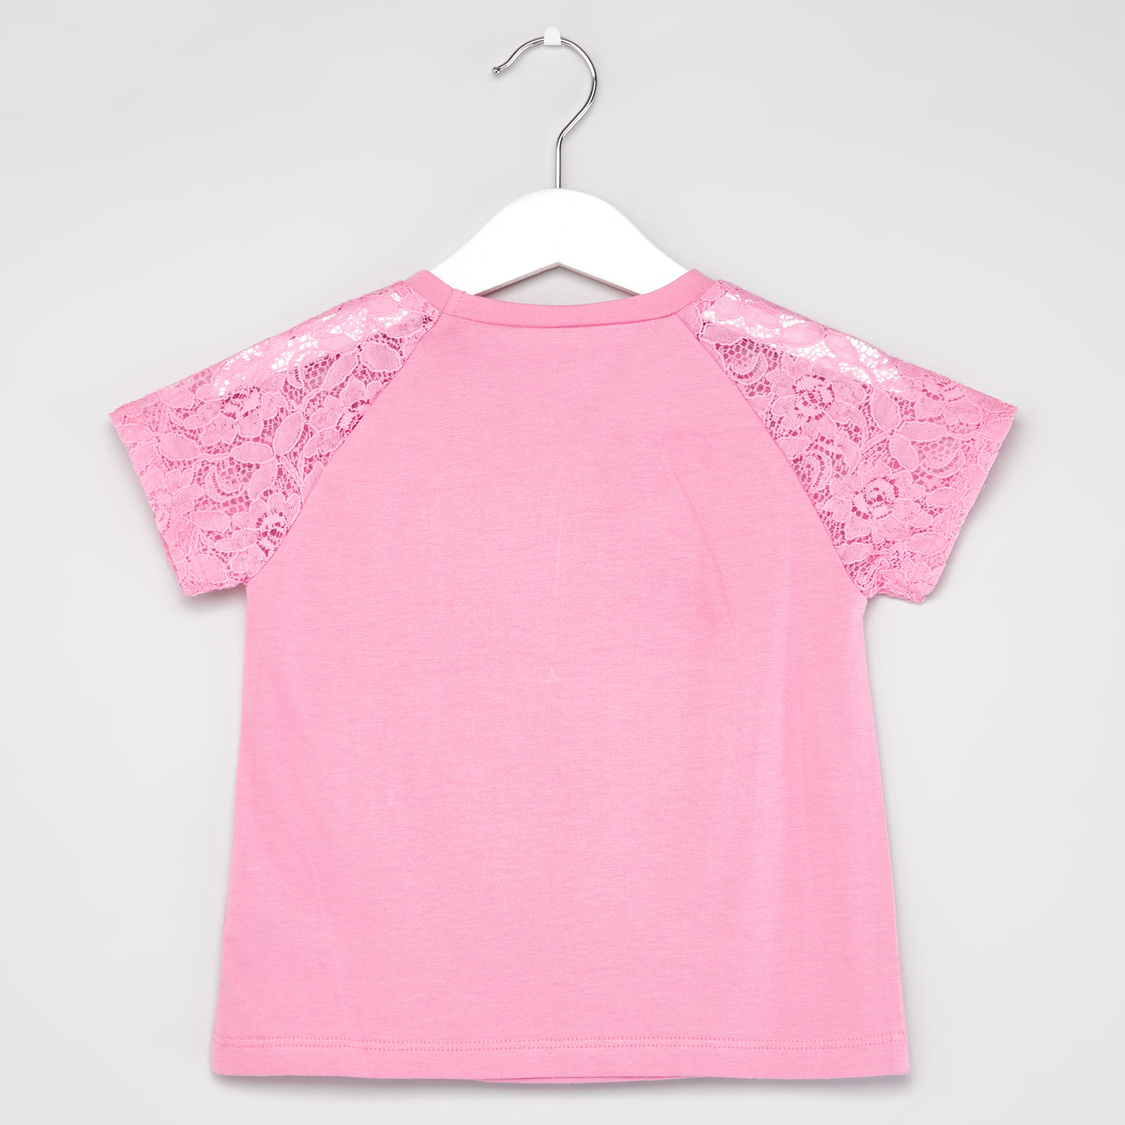 Minnie Mouse and Diasy Duck Printed T-shirt with Bow Detail Shorts